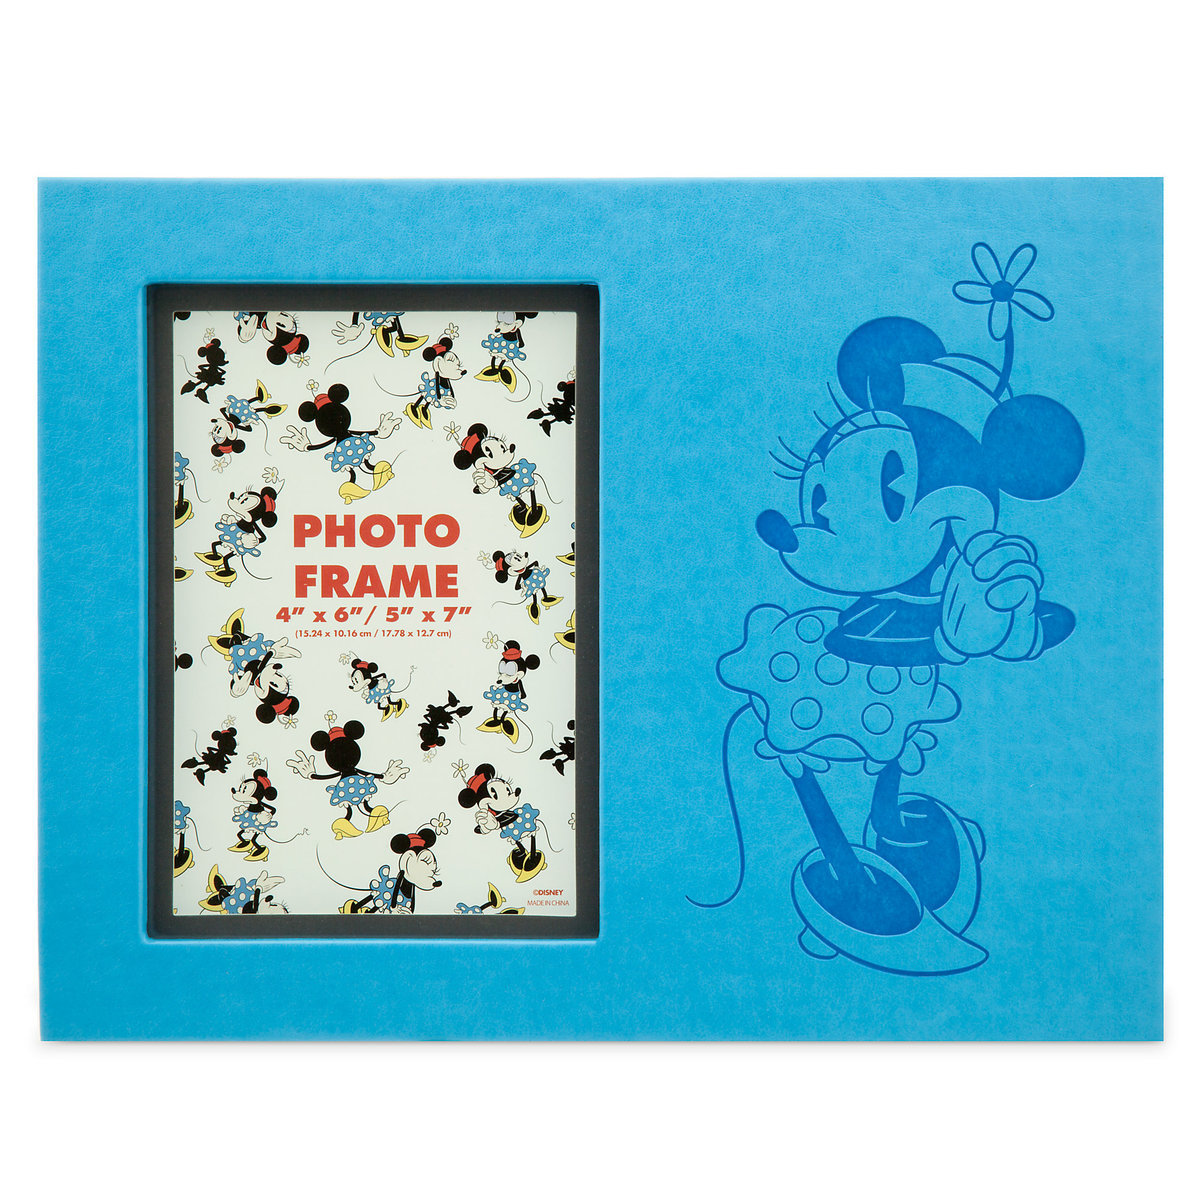 Disney Photo Frame - Timeless Minnie Mouse - 4x6 or 5x7 Picture Frame